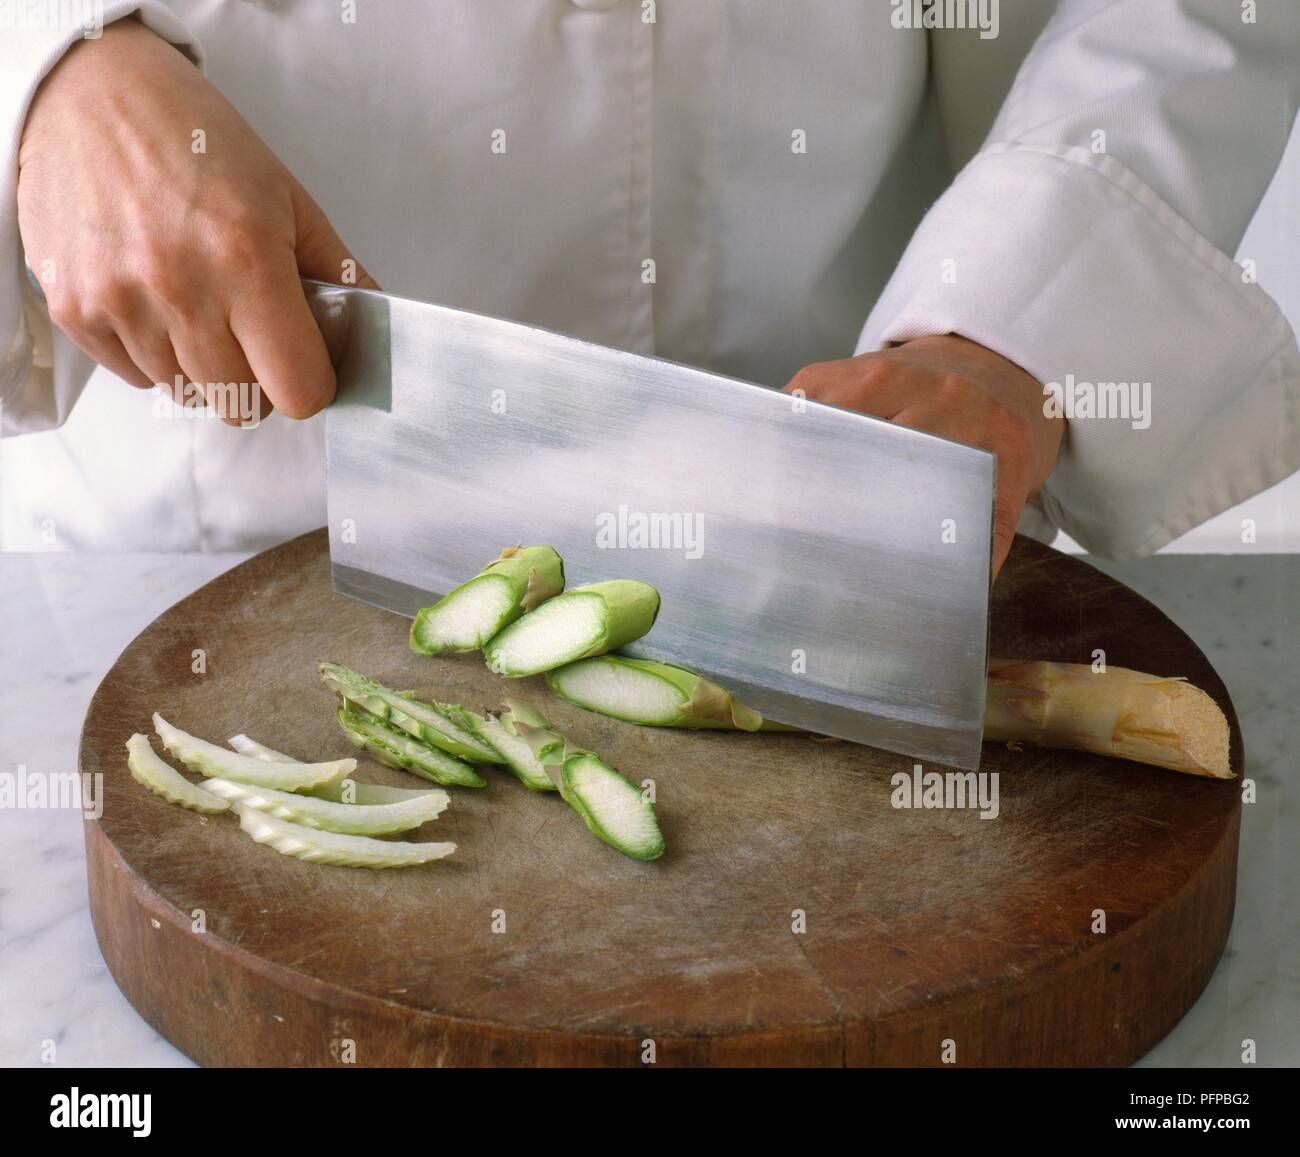 Chef's hands chopping asparagus with cleaver, chopped fennel nearby, close-up Stock Photo